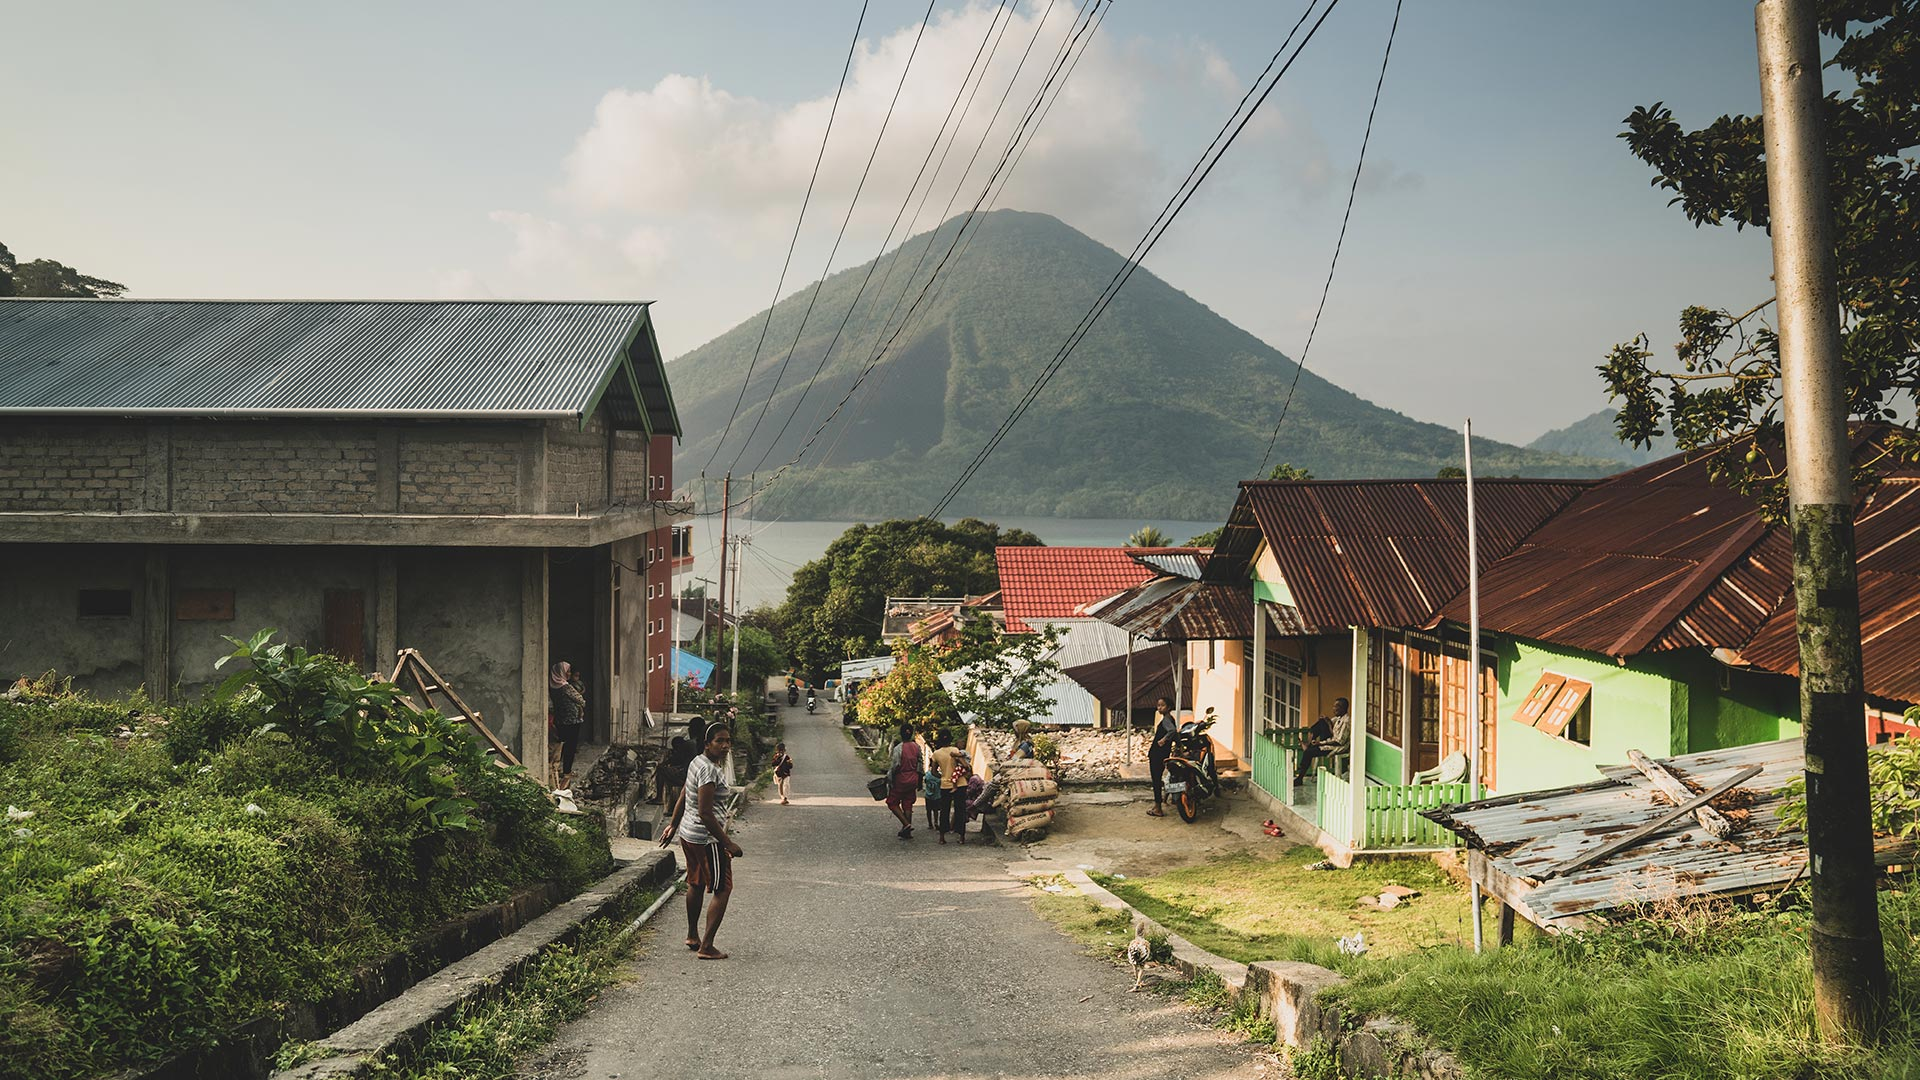 Traditional local village in the Spice islands with a spectacular view of the volcano